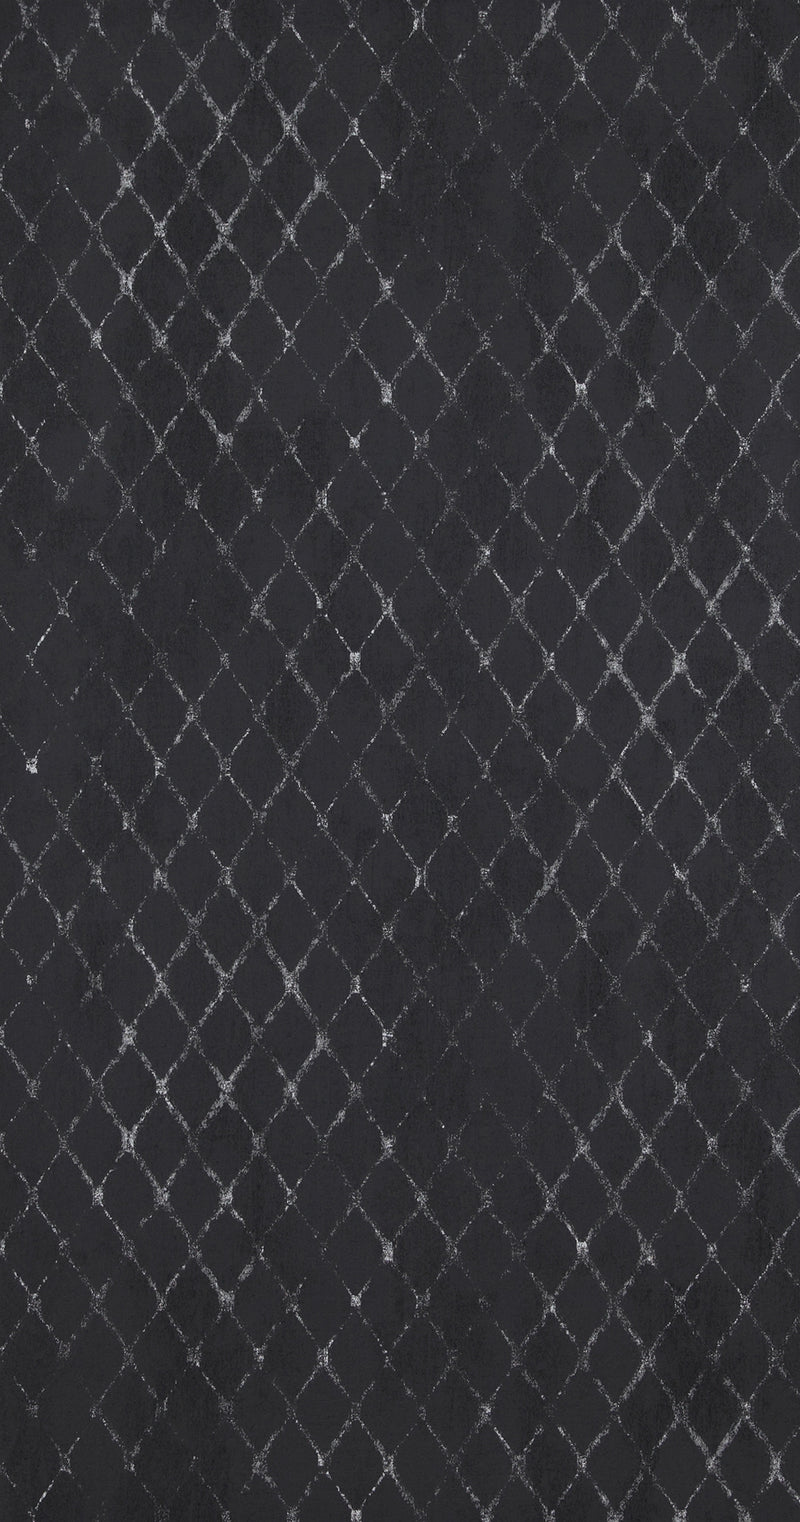 Black Subtle Diamond Commercial Wallpaper C7319 | Office & Hospitality